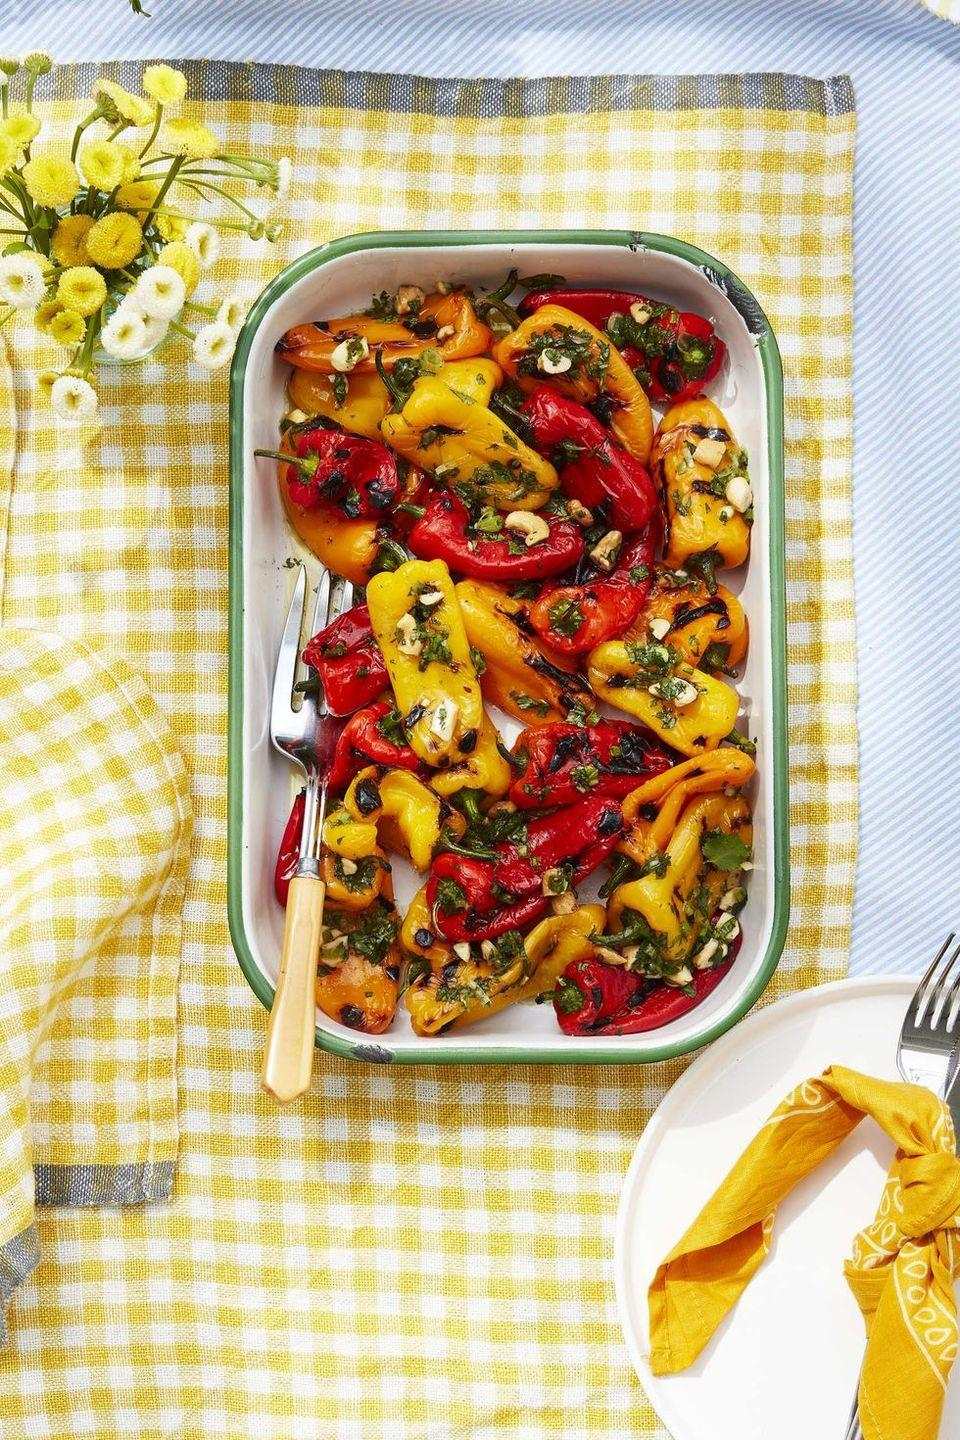 """<p>Grilled baby peppers get topped with a savory and tangy cilantro cashew sauce. <br></p><p><strong><a href=""""https://www.countryliving.com/food-drinks/a32353796/charred-baby-peppers-with-lime-and-cashew-vinaigrette/"""" rel=""""nofollow noopener"""" target=""""_blank"""" data-ylk=""""slk:Get the recipe"""" class=""""link rapid-noclick-resp"""">Get the recipe</a>.</strong></p>"""